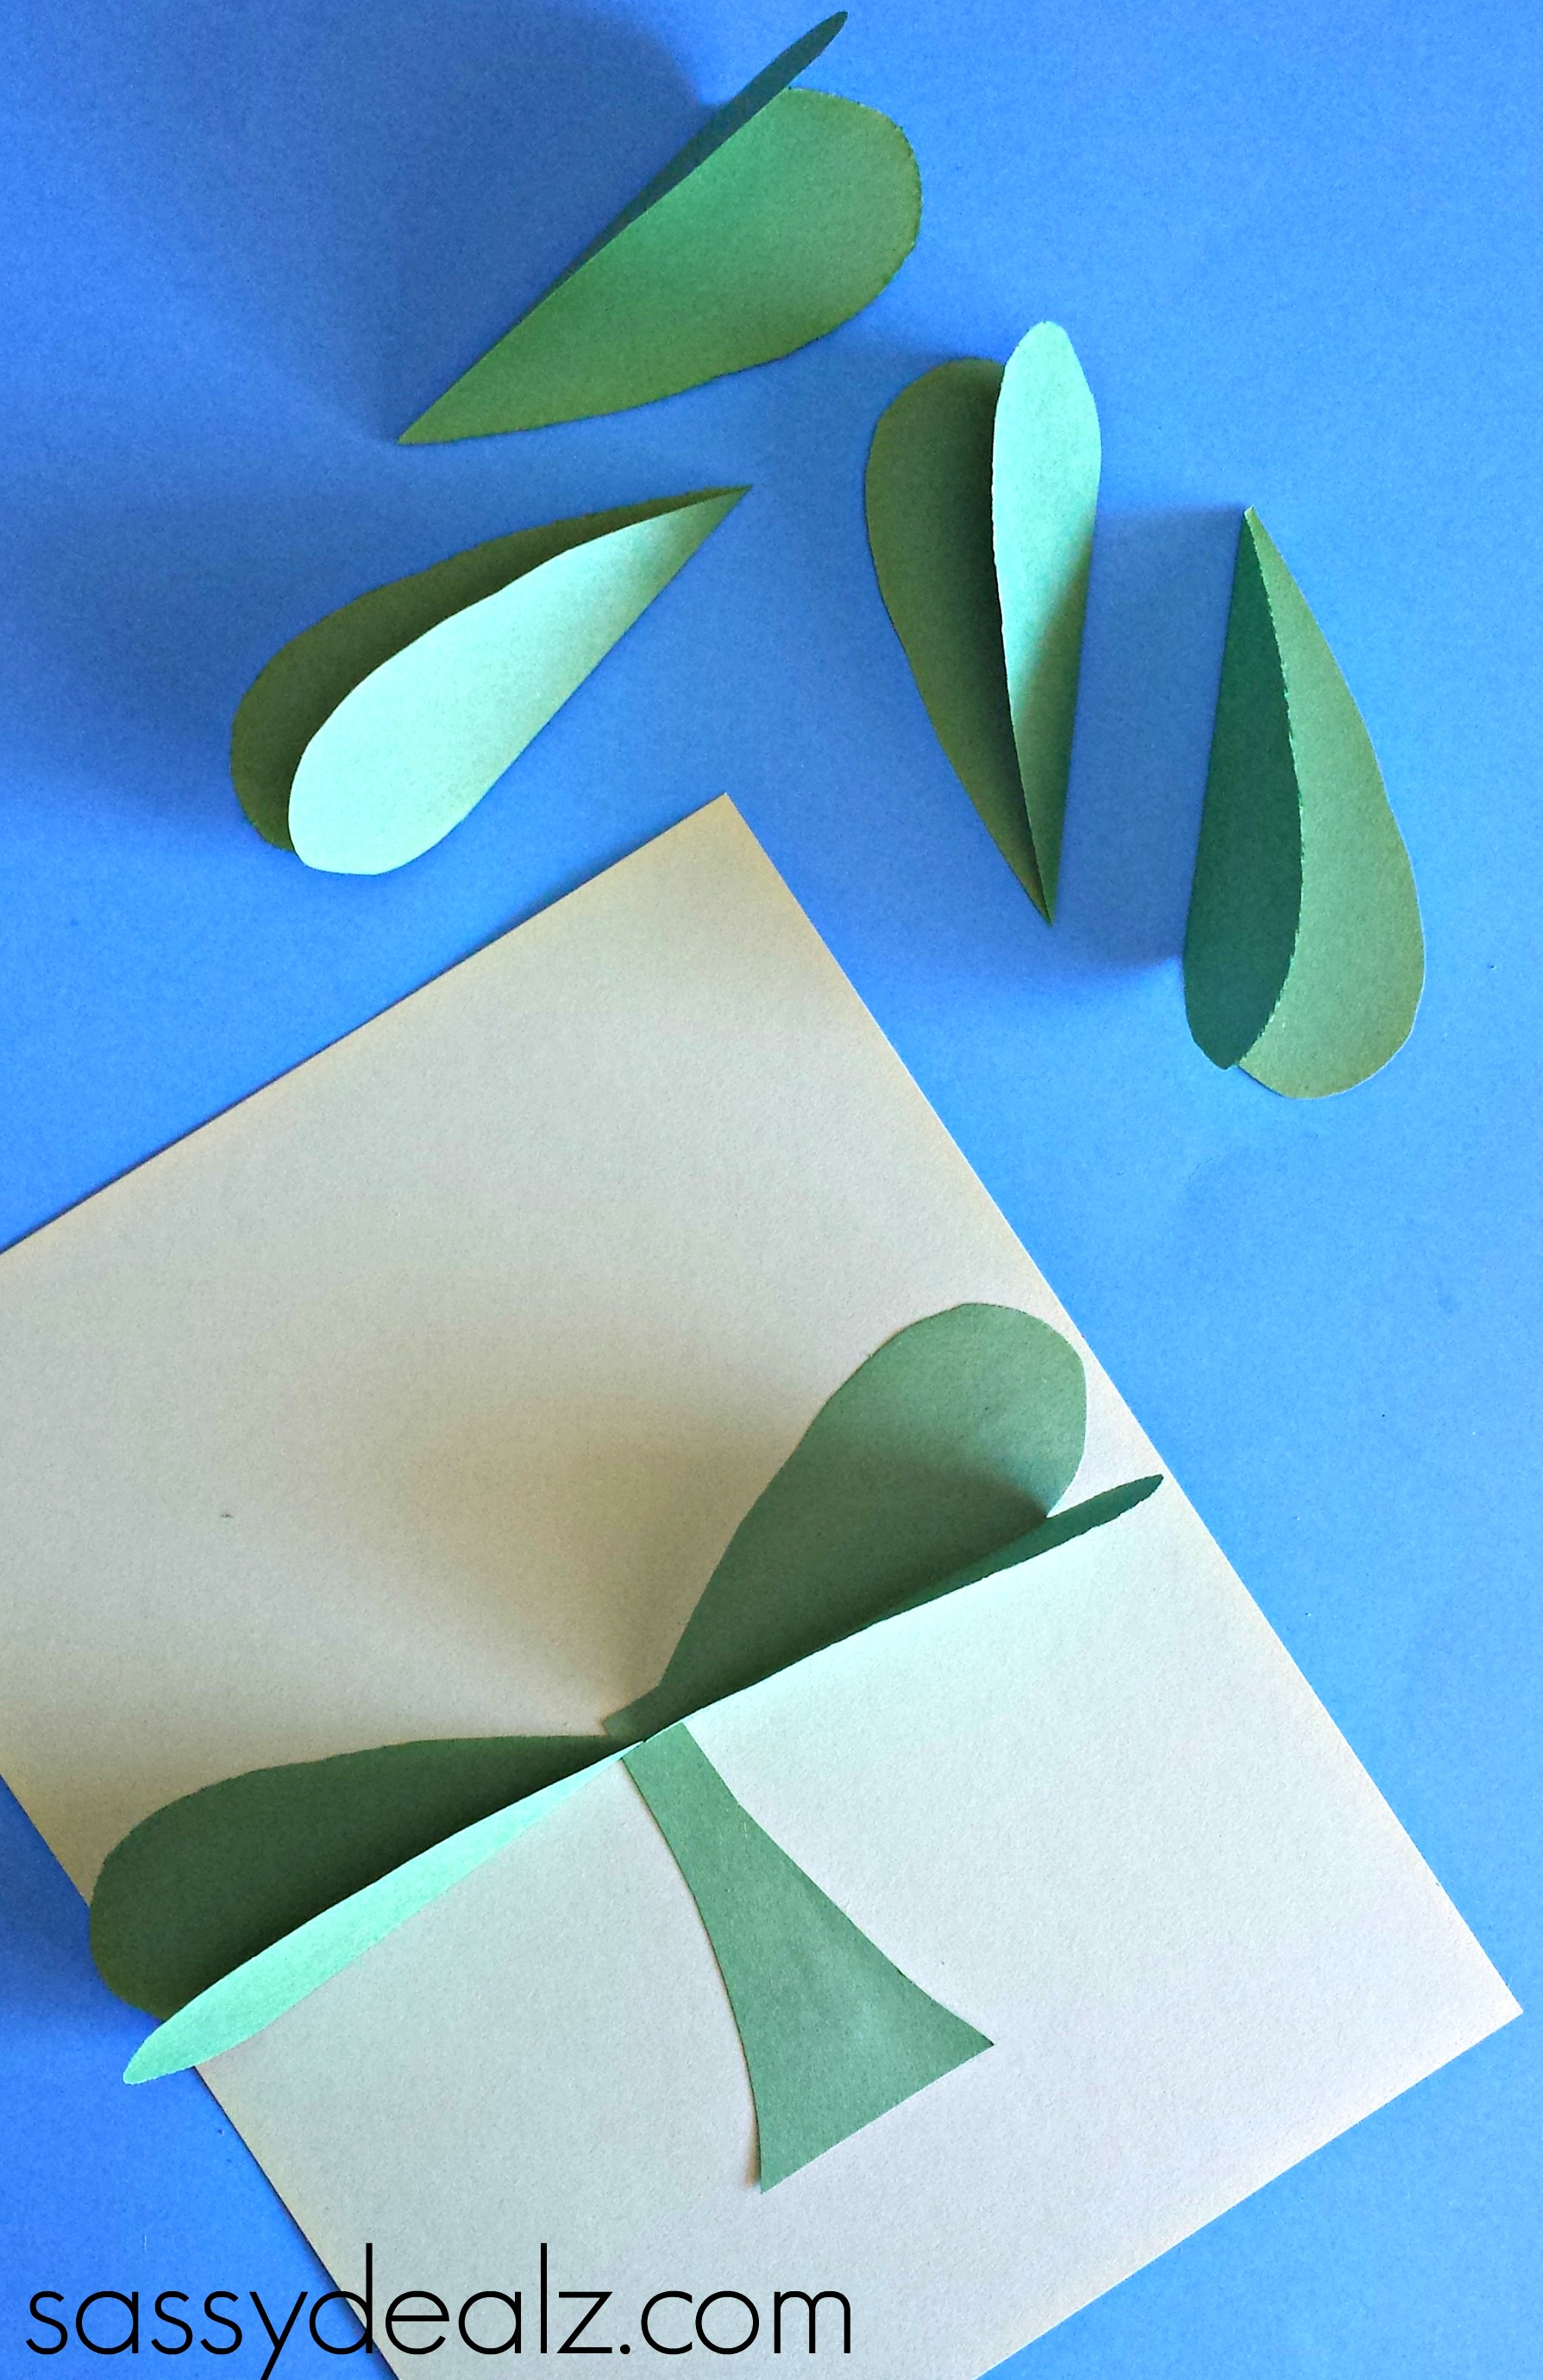 3D Paper Shamrock Craft For St  Patrick's Day - Crafty Morning